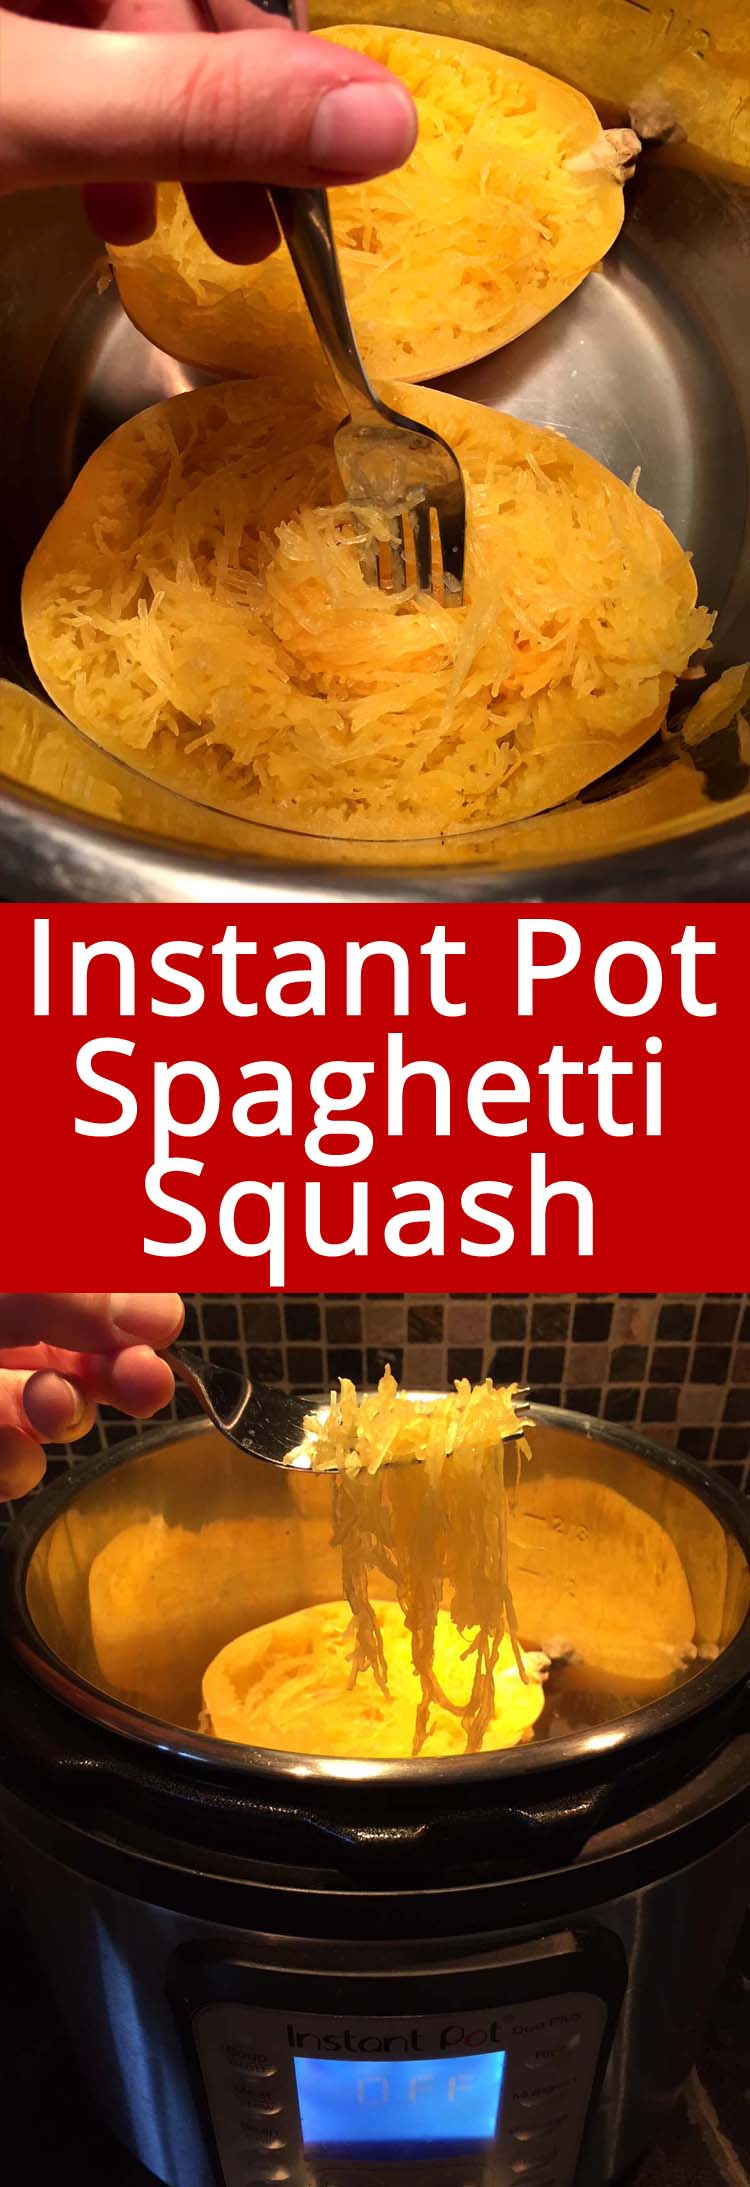 Instant Pot is the best method for cooking spaghetti squash! So quick and easy! Great low-carb alternative to pasta! Once you try making spaghetti squash in your Instant Pot, you'll never make it any other way!